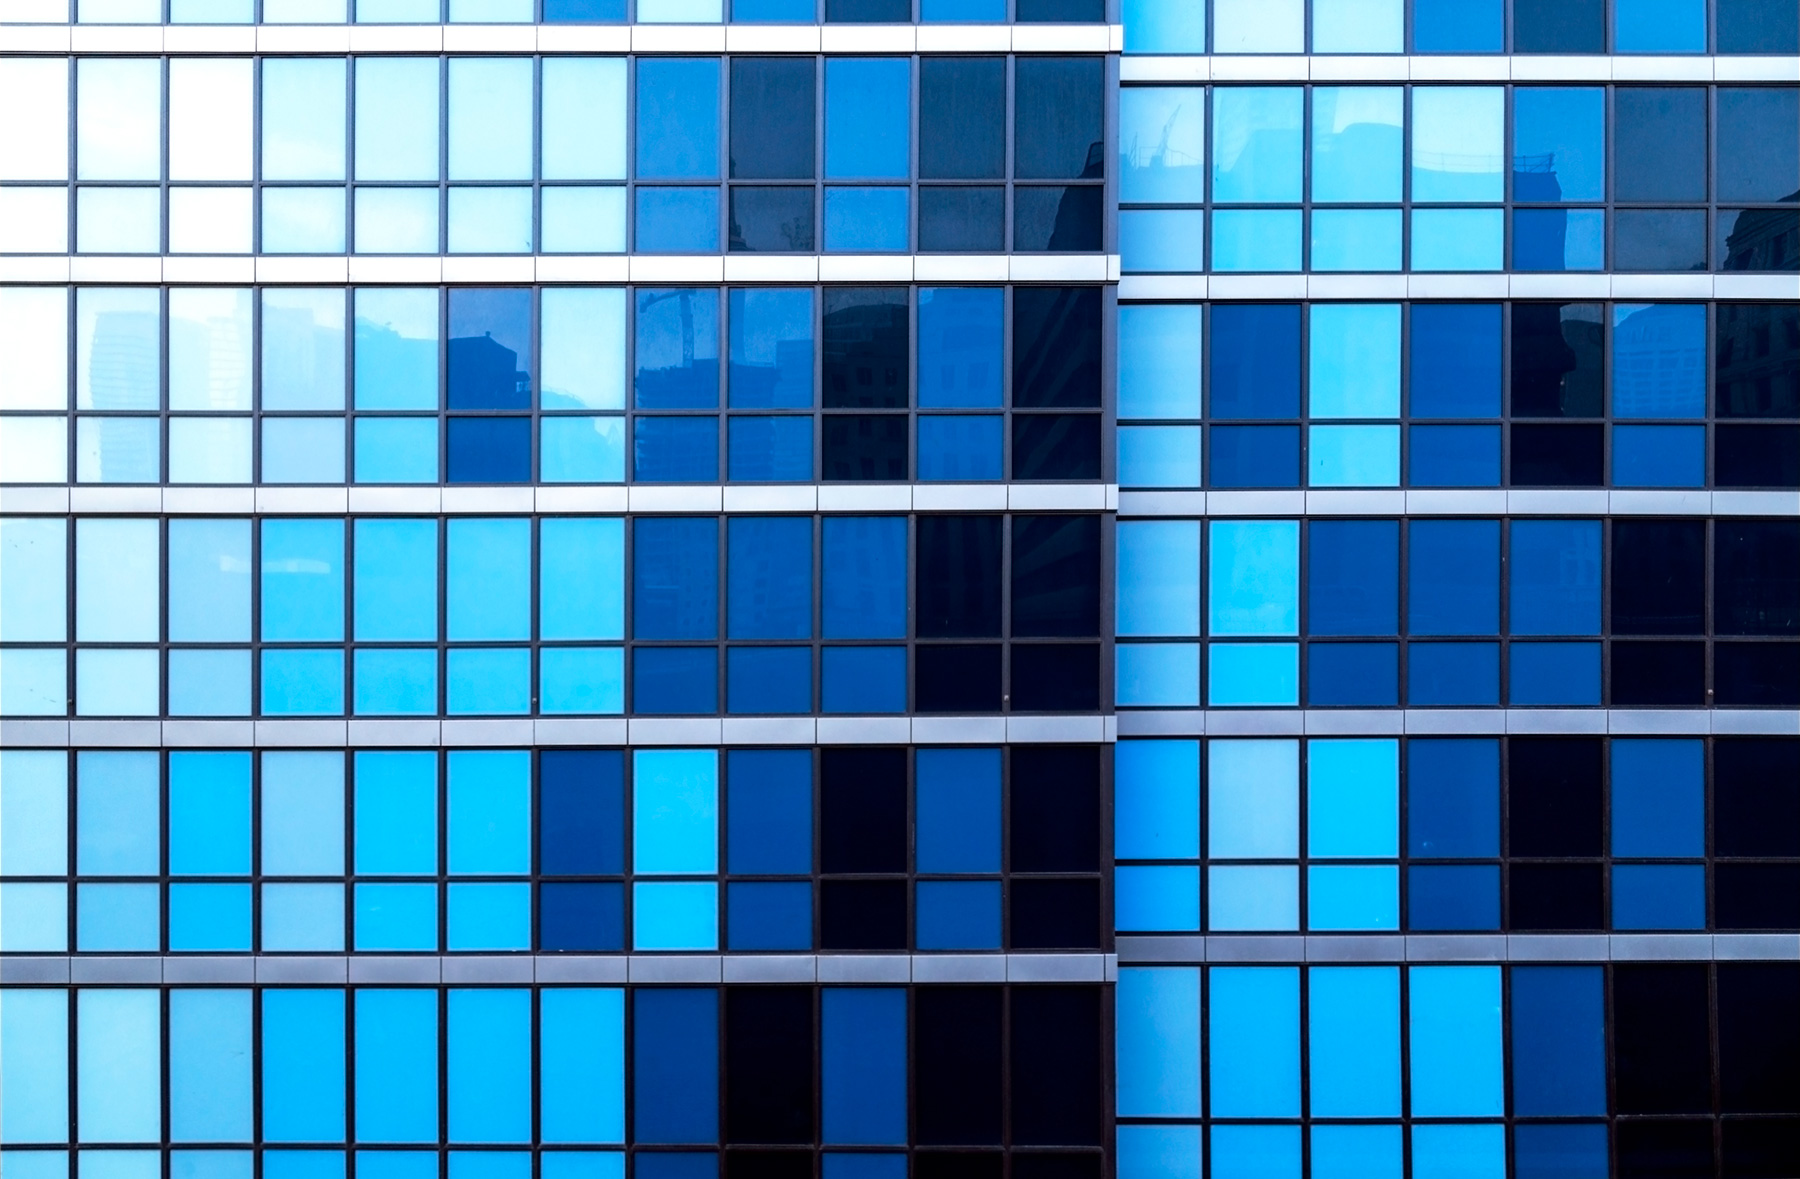 20150713. Six shades of blue at Toronto's 210 Simcoe condos. Min